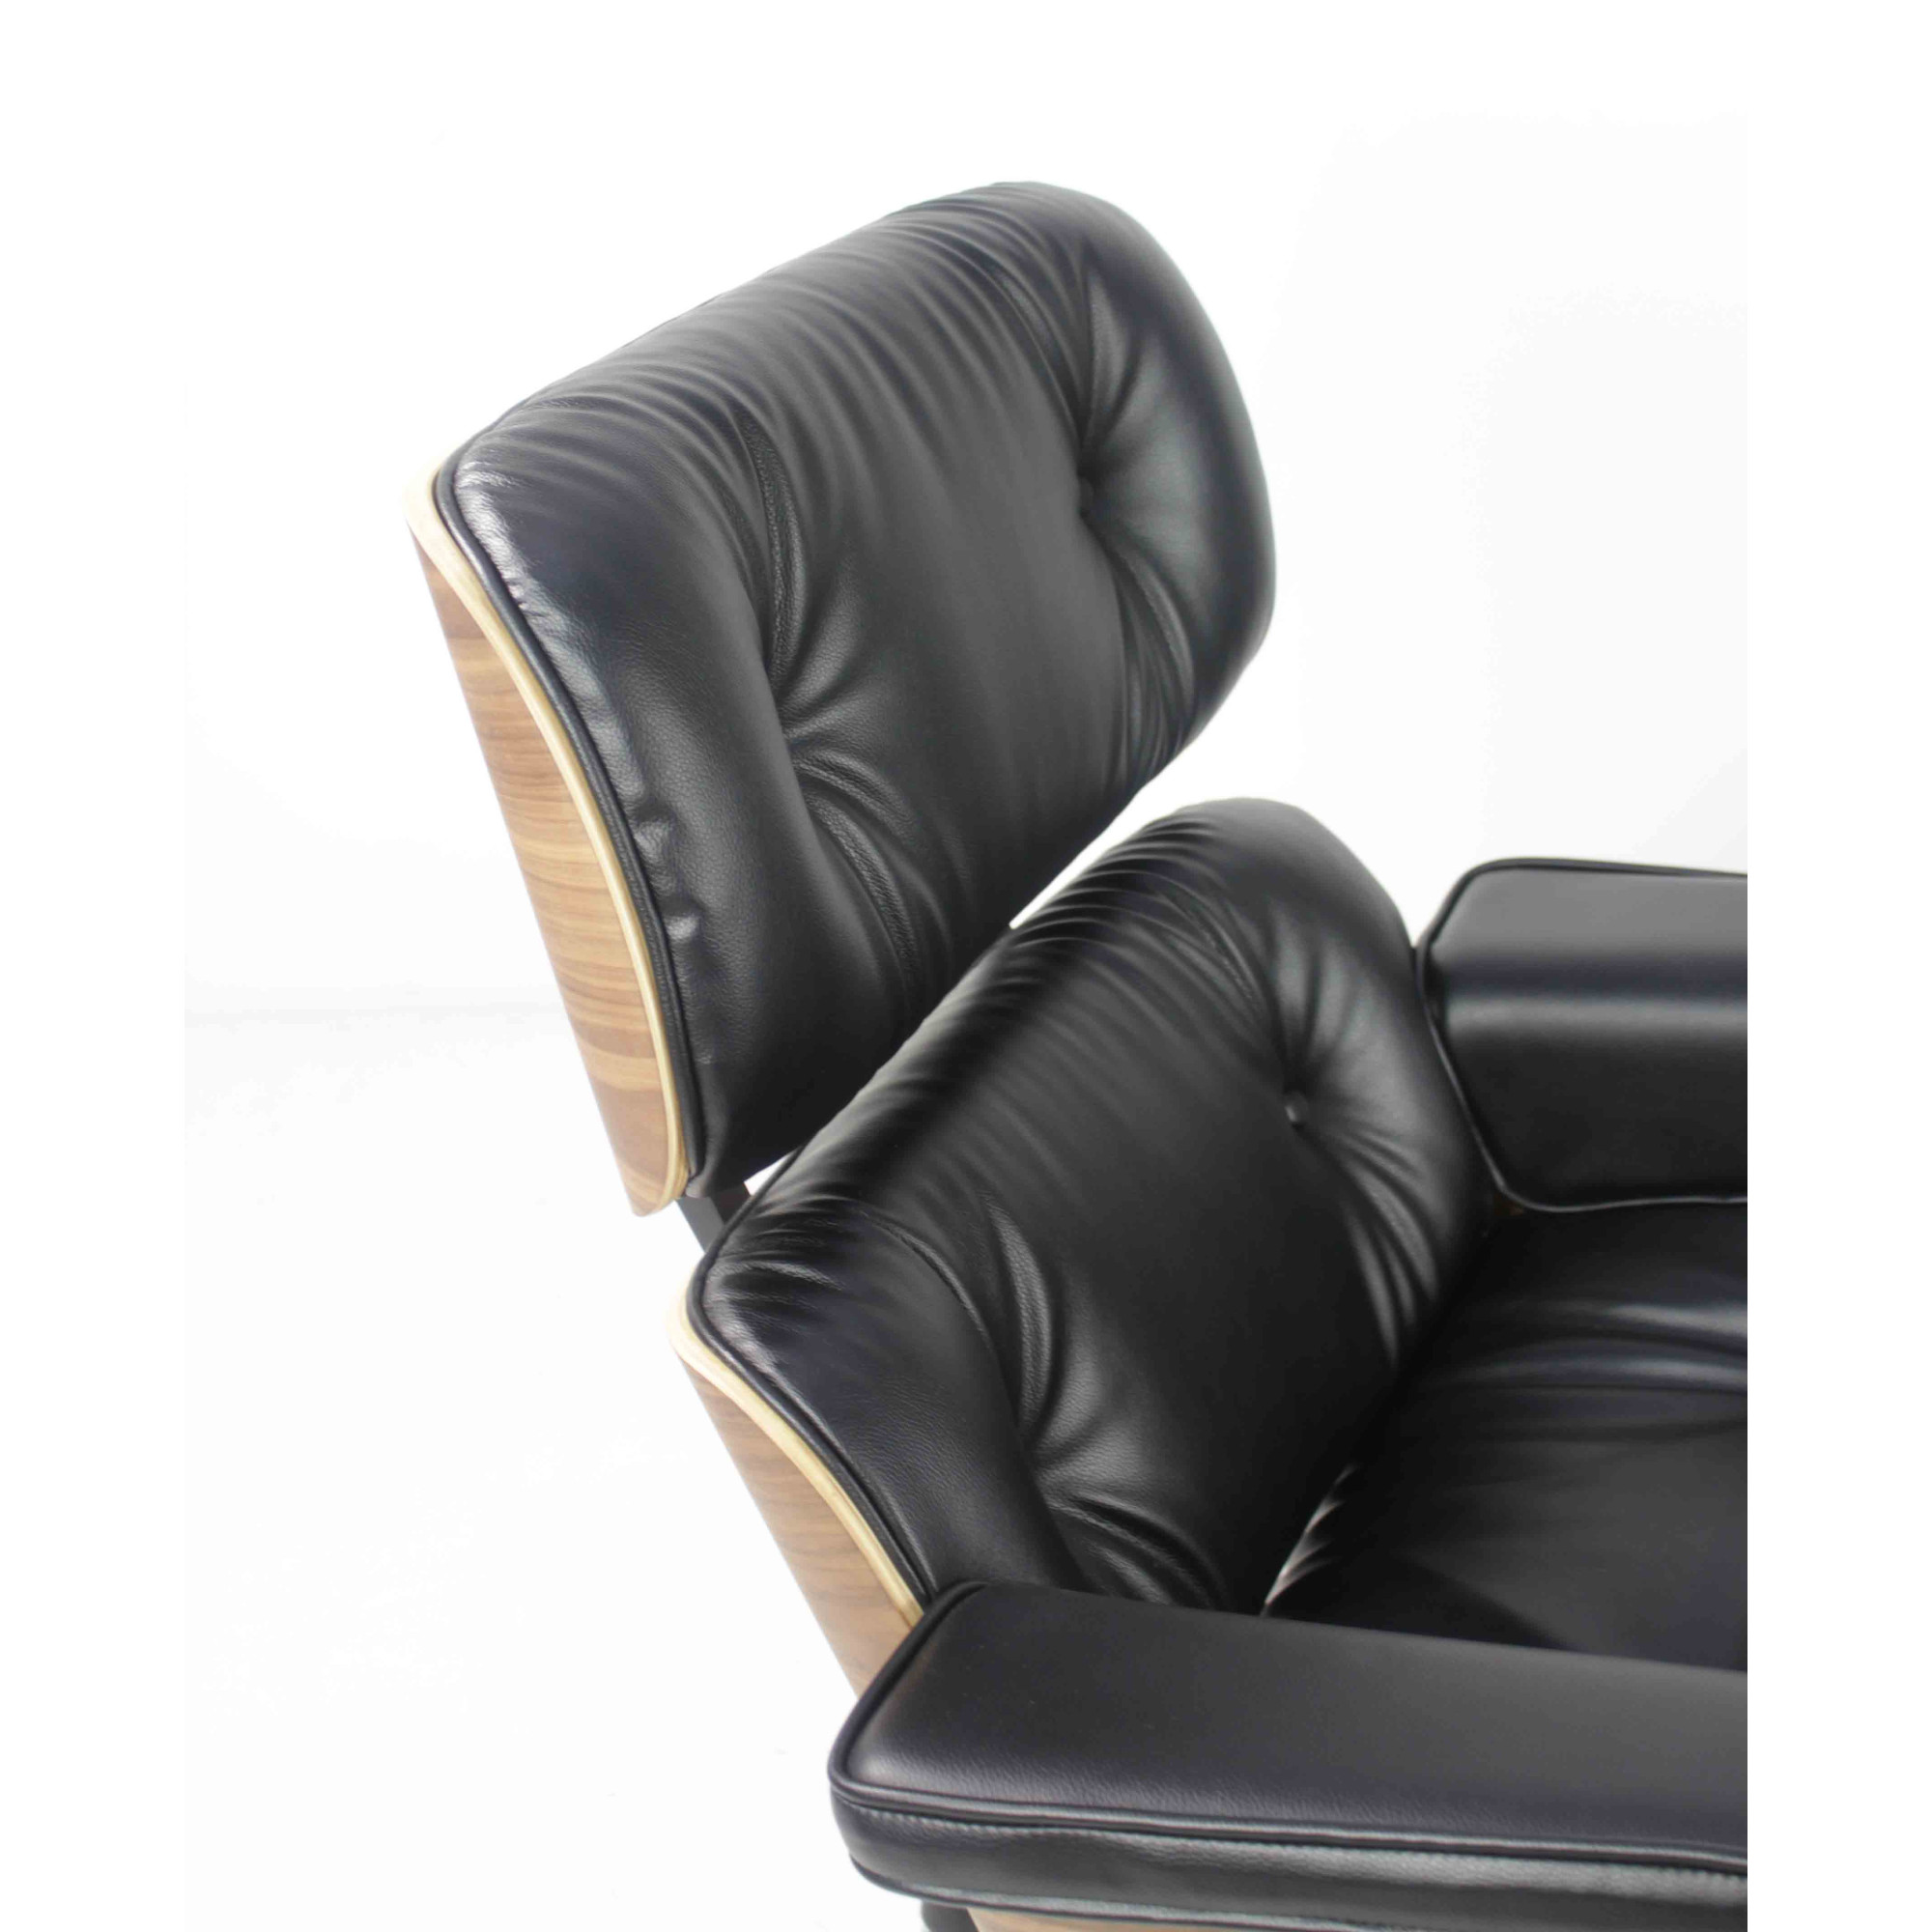 Eames Replica Lounge Chair (Black Leather)